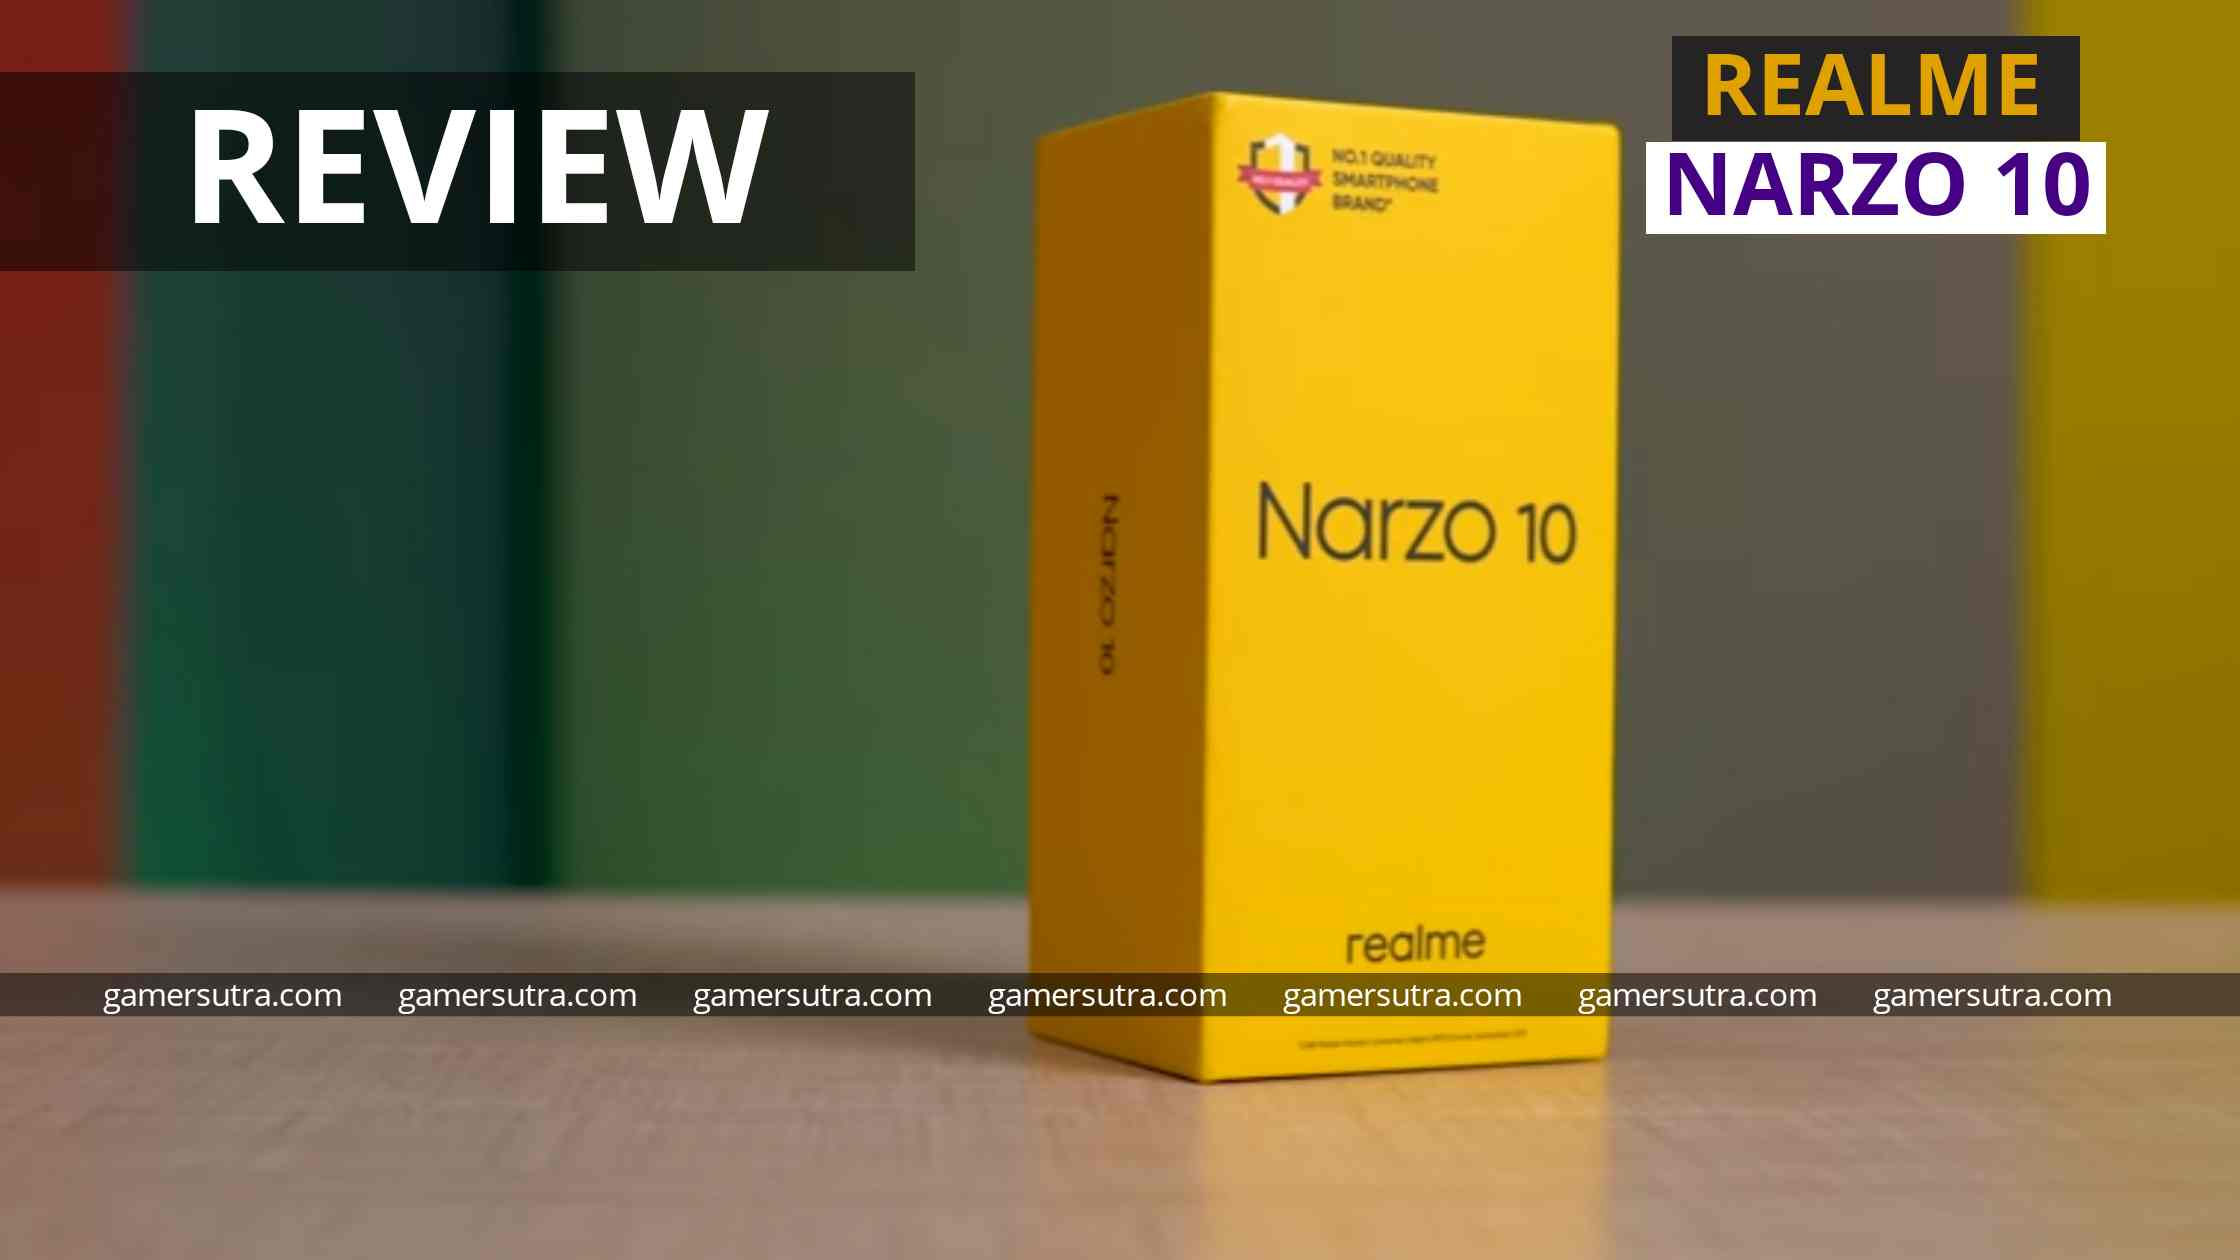 Realme Narzo 10 review - A Budget Gaming Phone or Not!